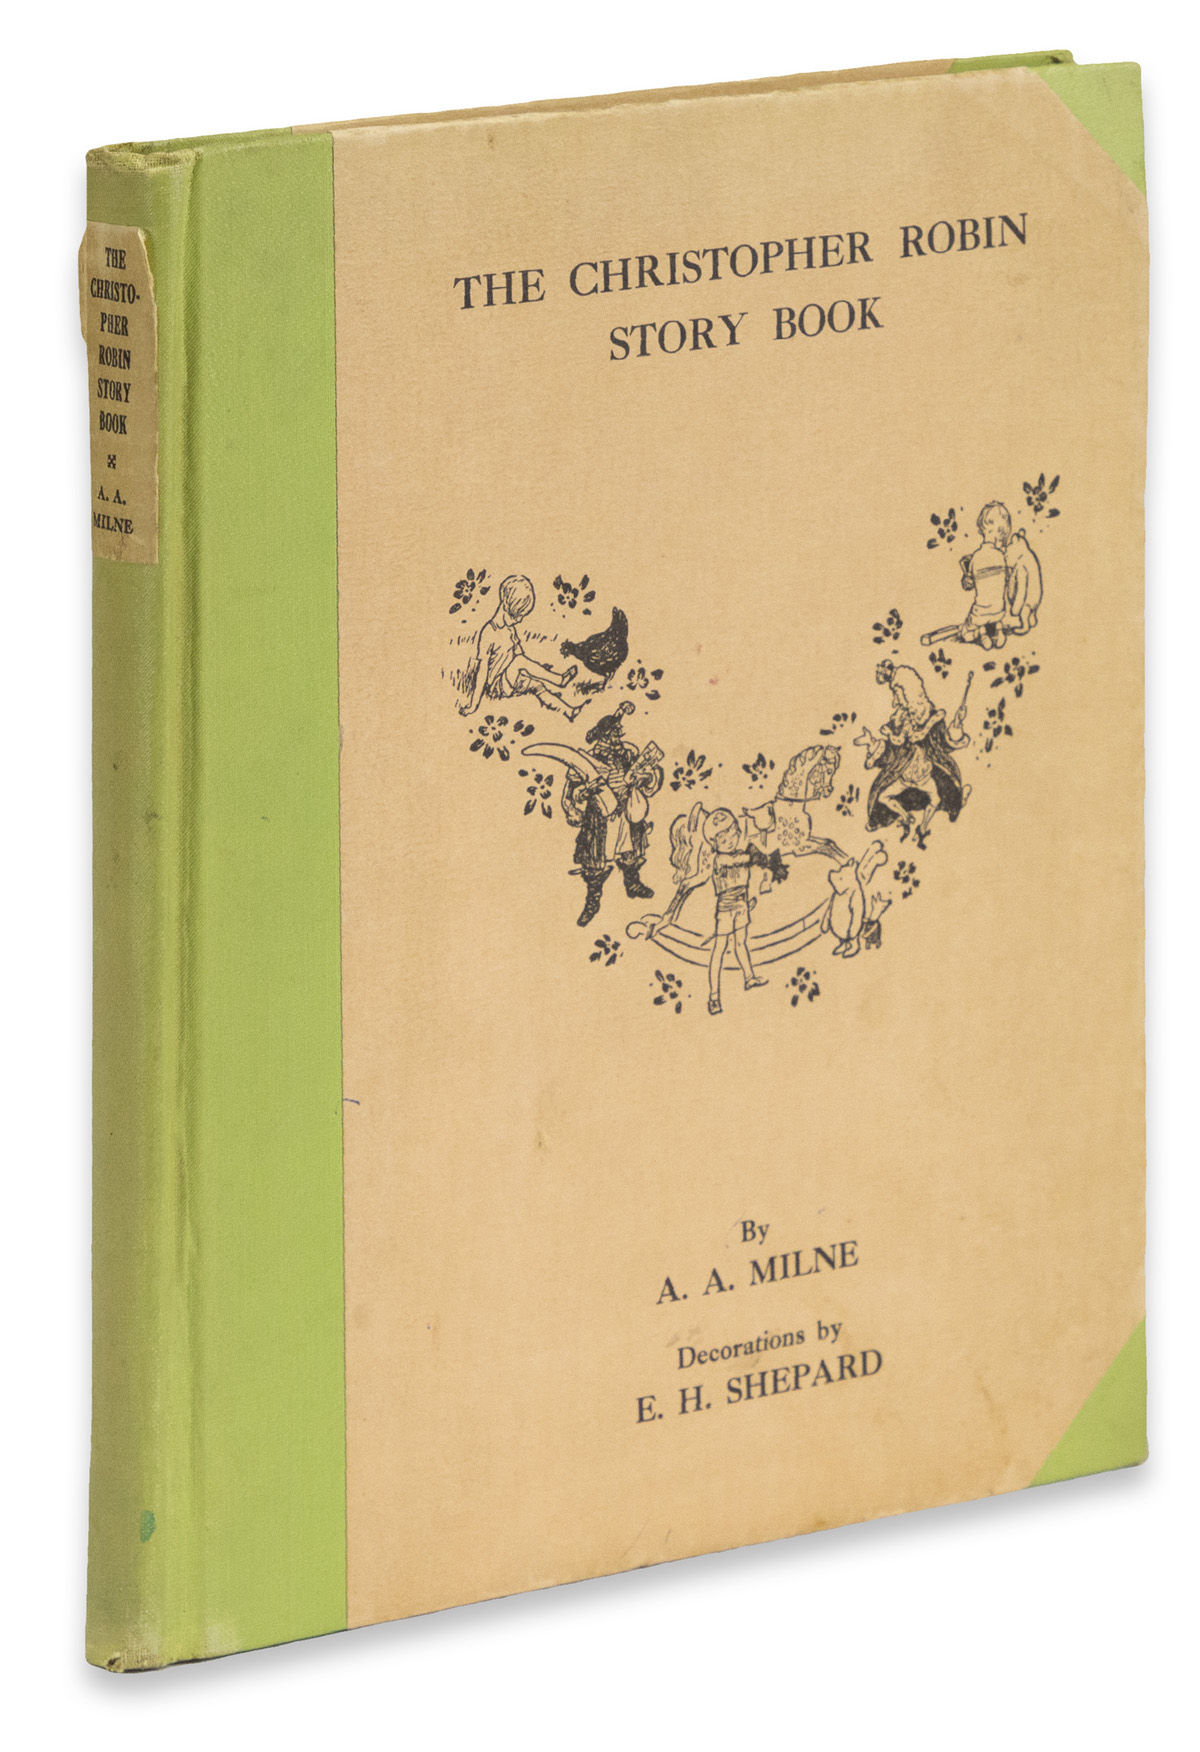 (CHILDRENS LITERATURE.) Milne, A.A. The Christopher Robin Story.